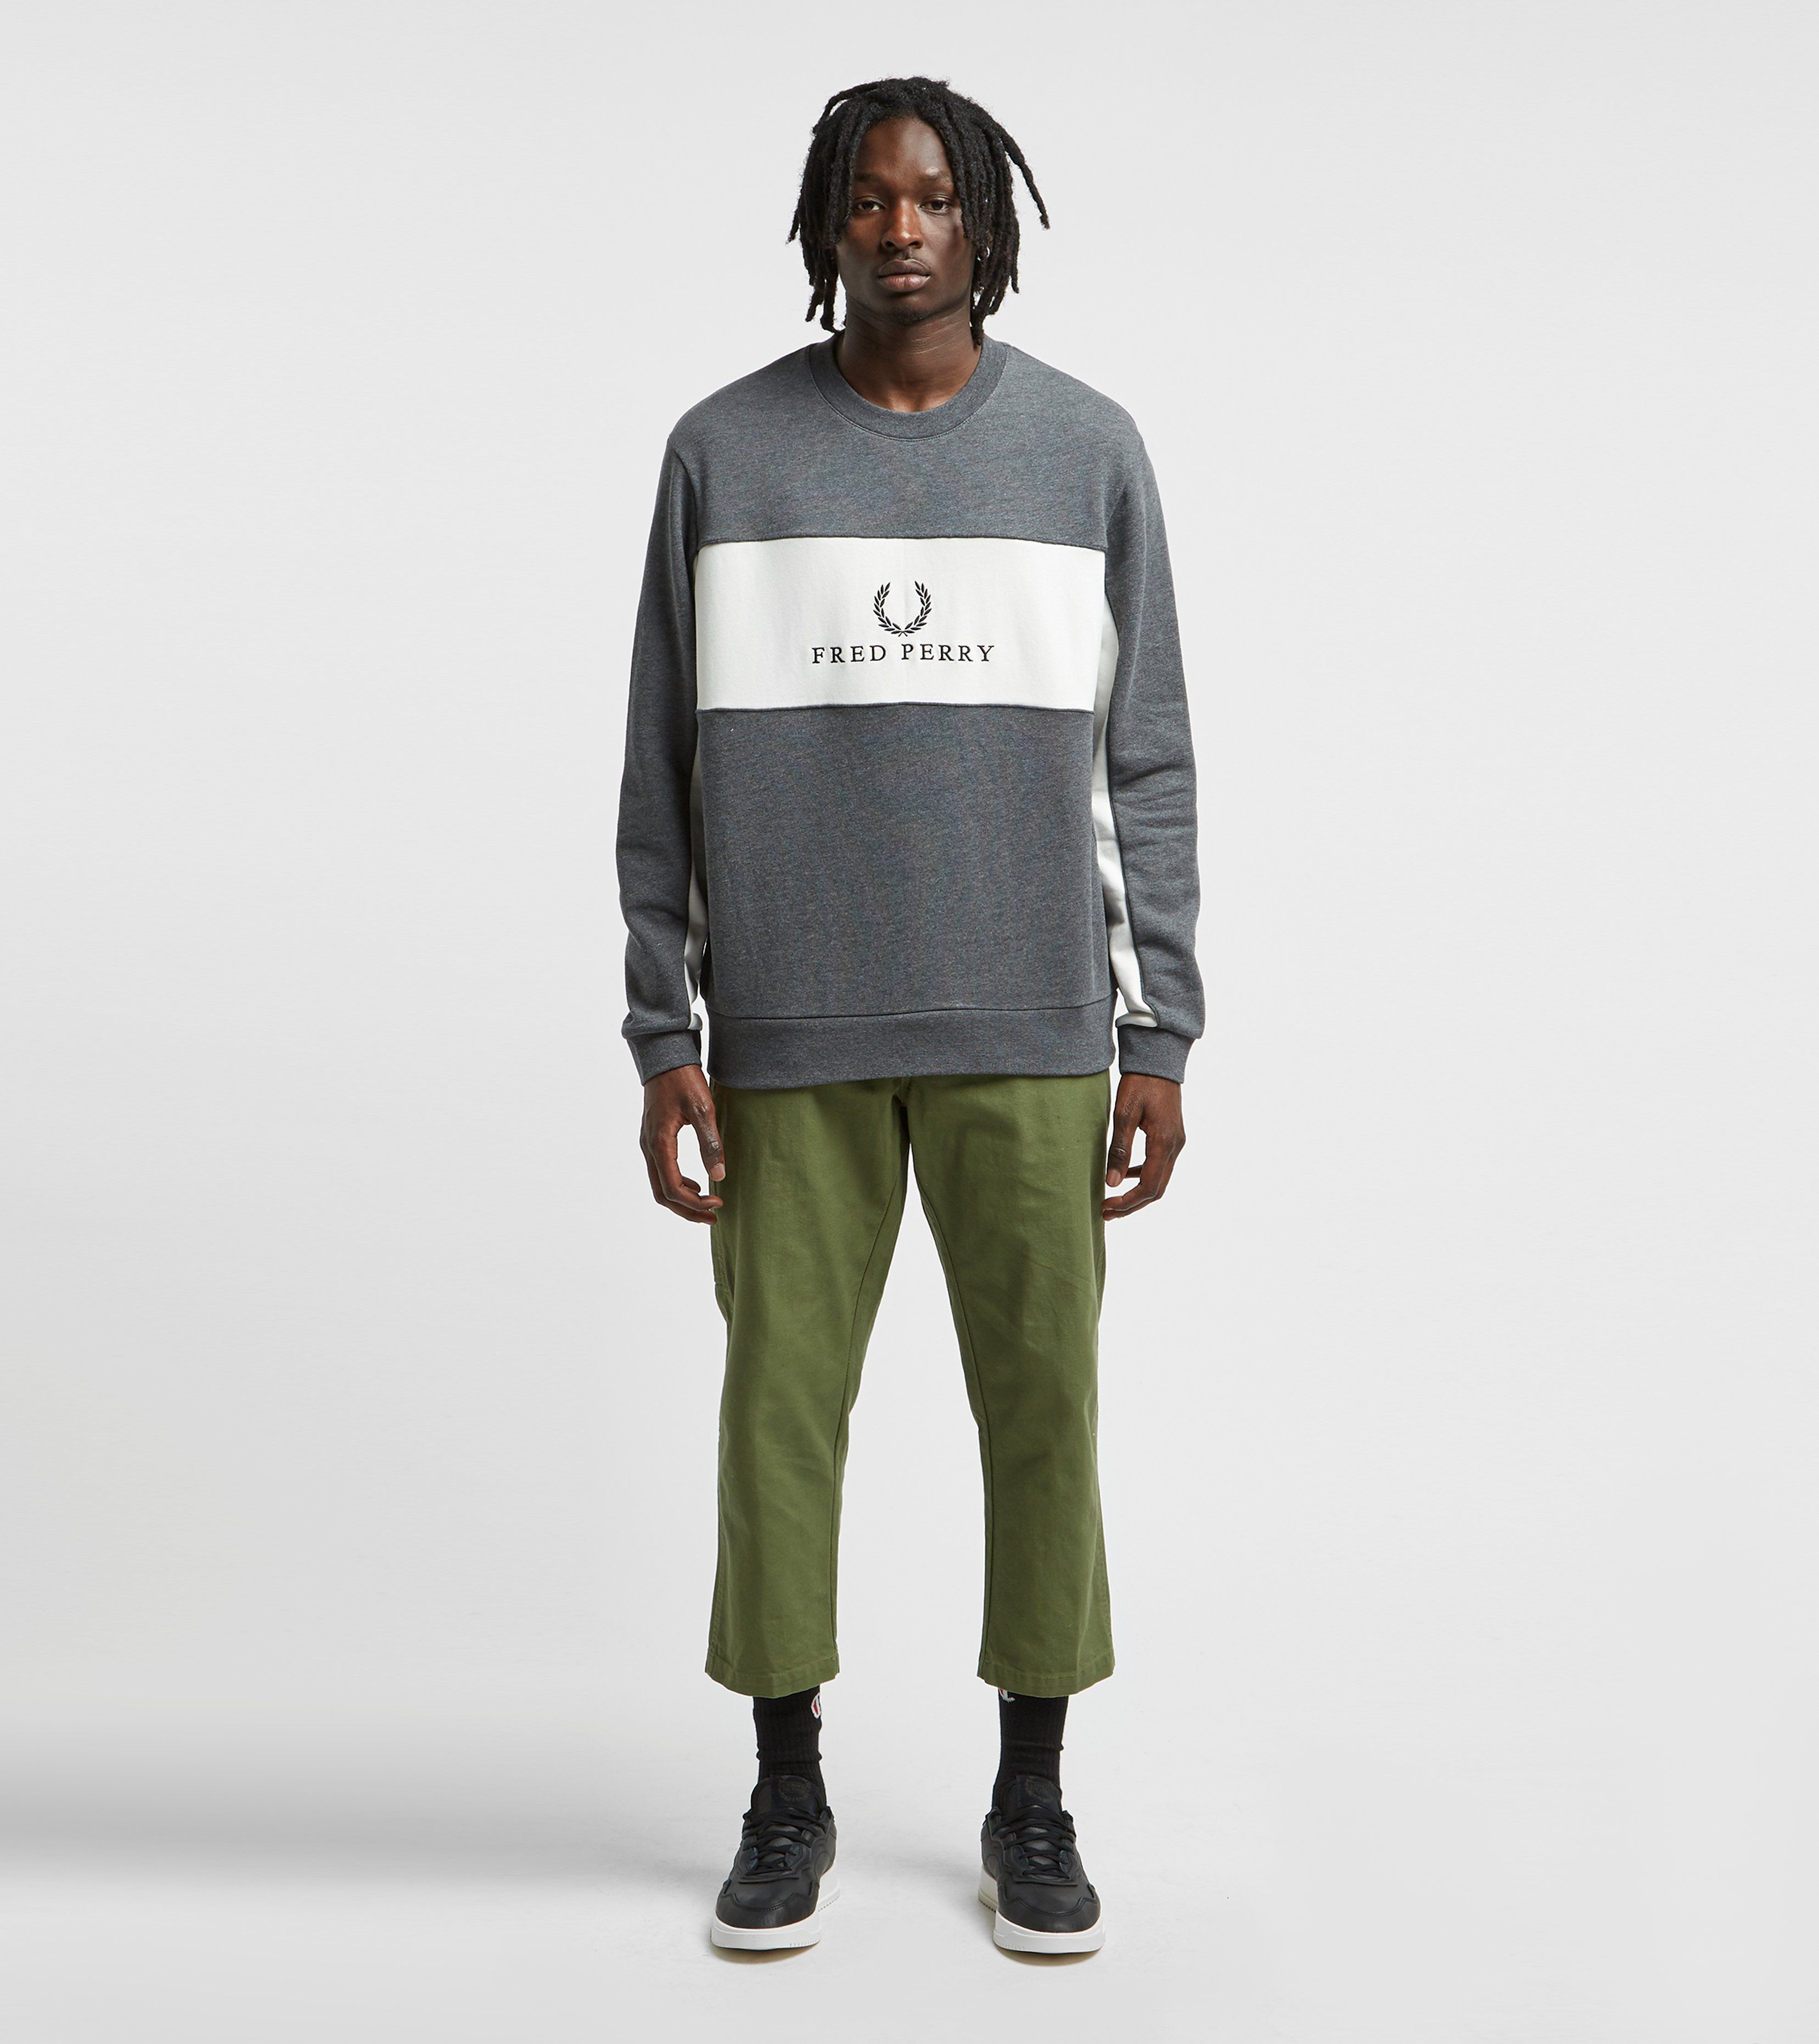 Fred Perry Central Panel Crew Sweatshirt